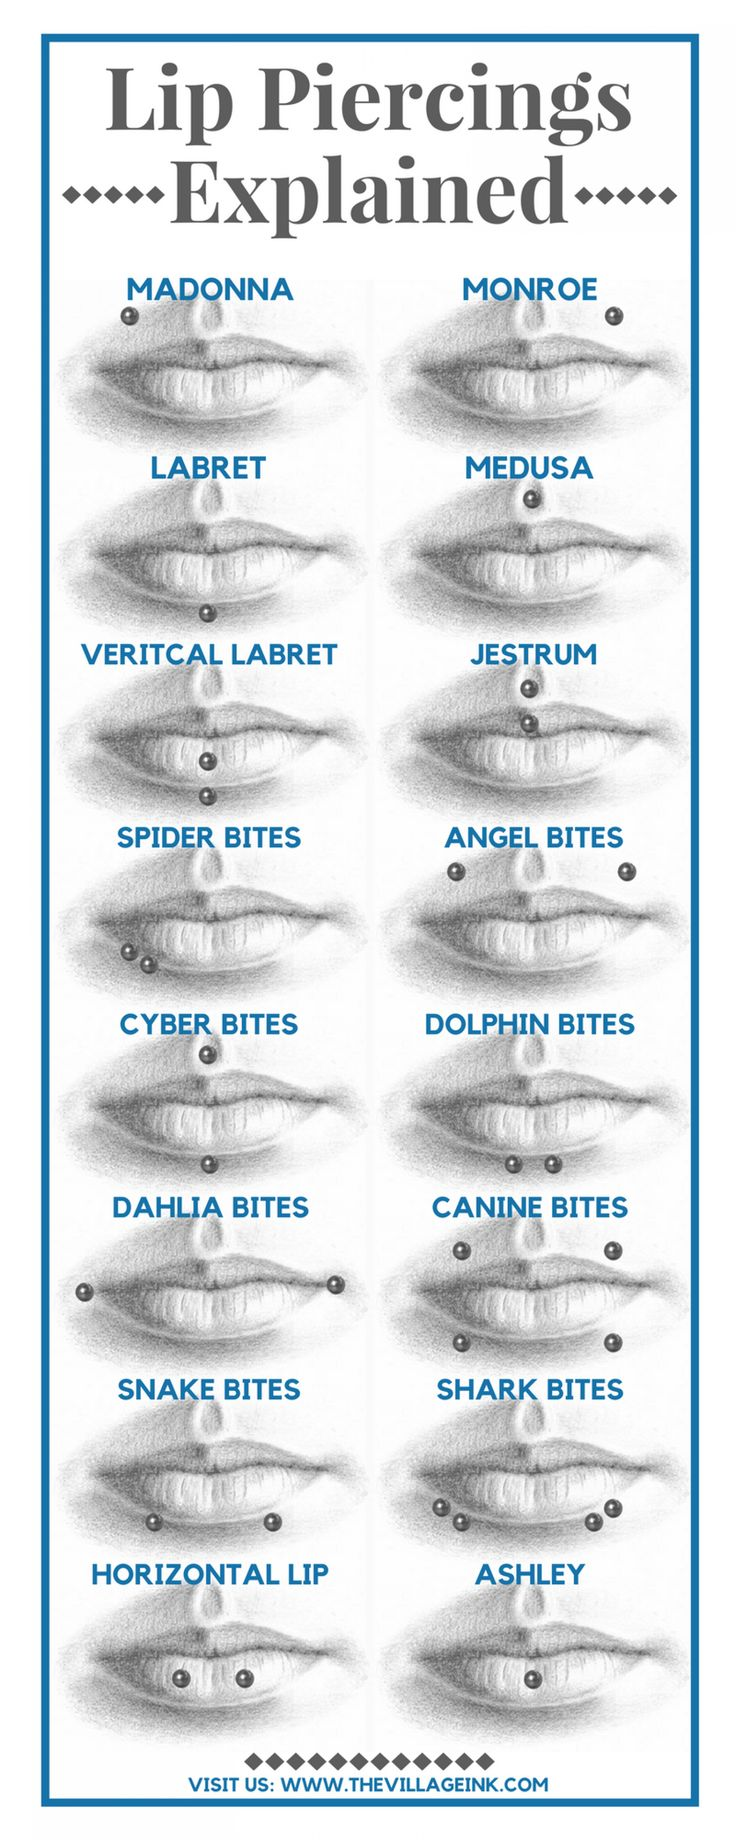 Lip Piercings Explained Infographic